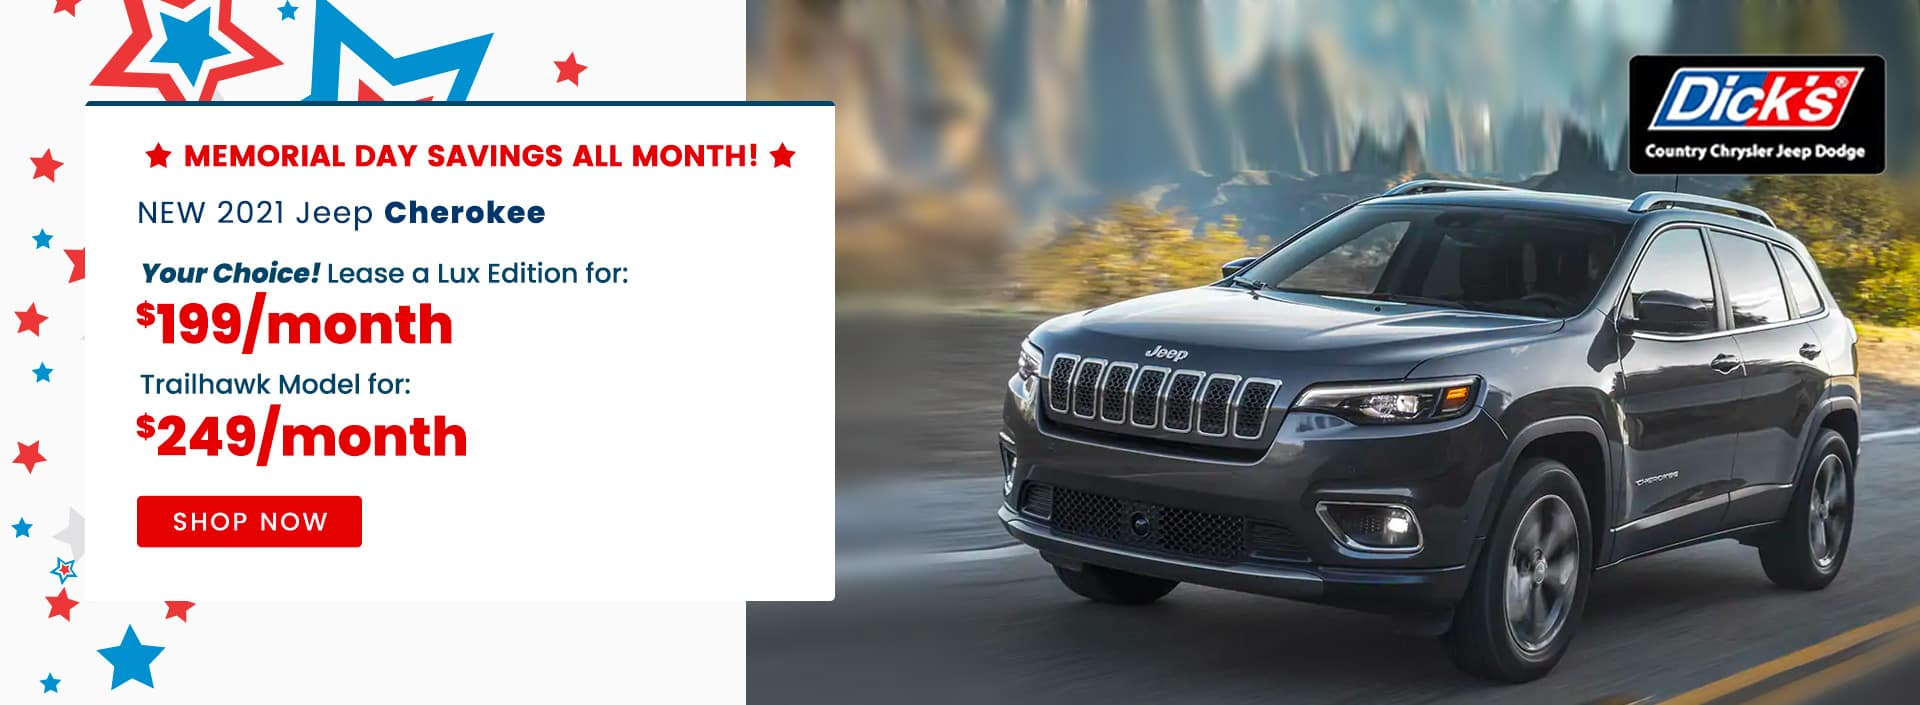 NEW 2021 Jeep Cherokee Your Choice! Lease a Lux Edition for $199 / month or Trailhawk Model for $249 /mo